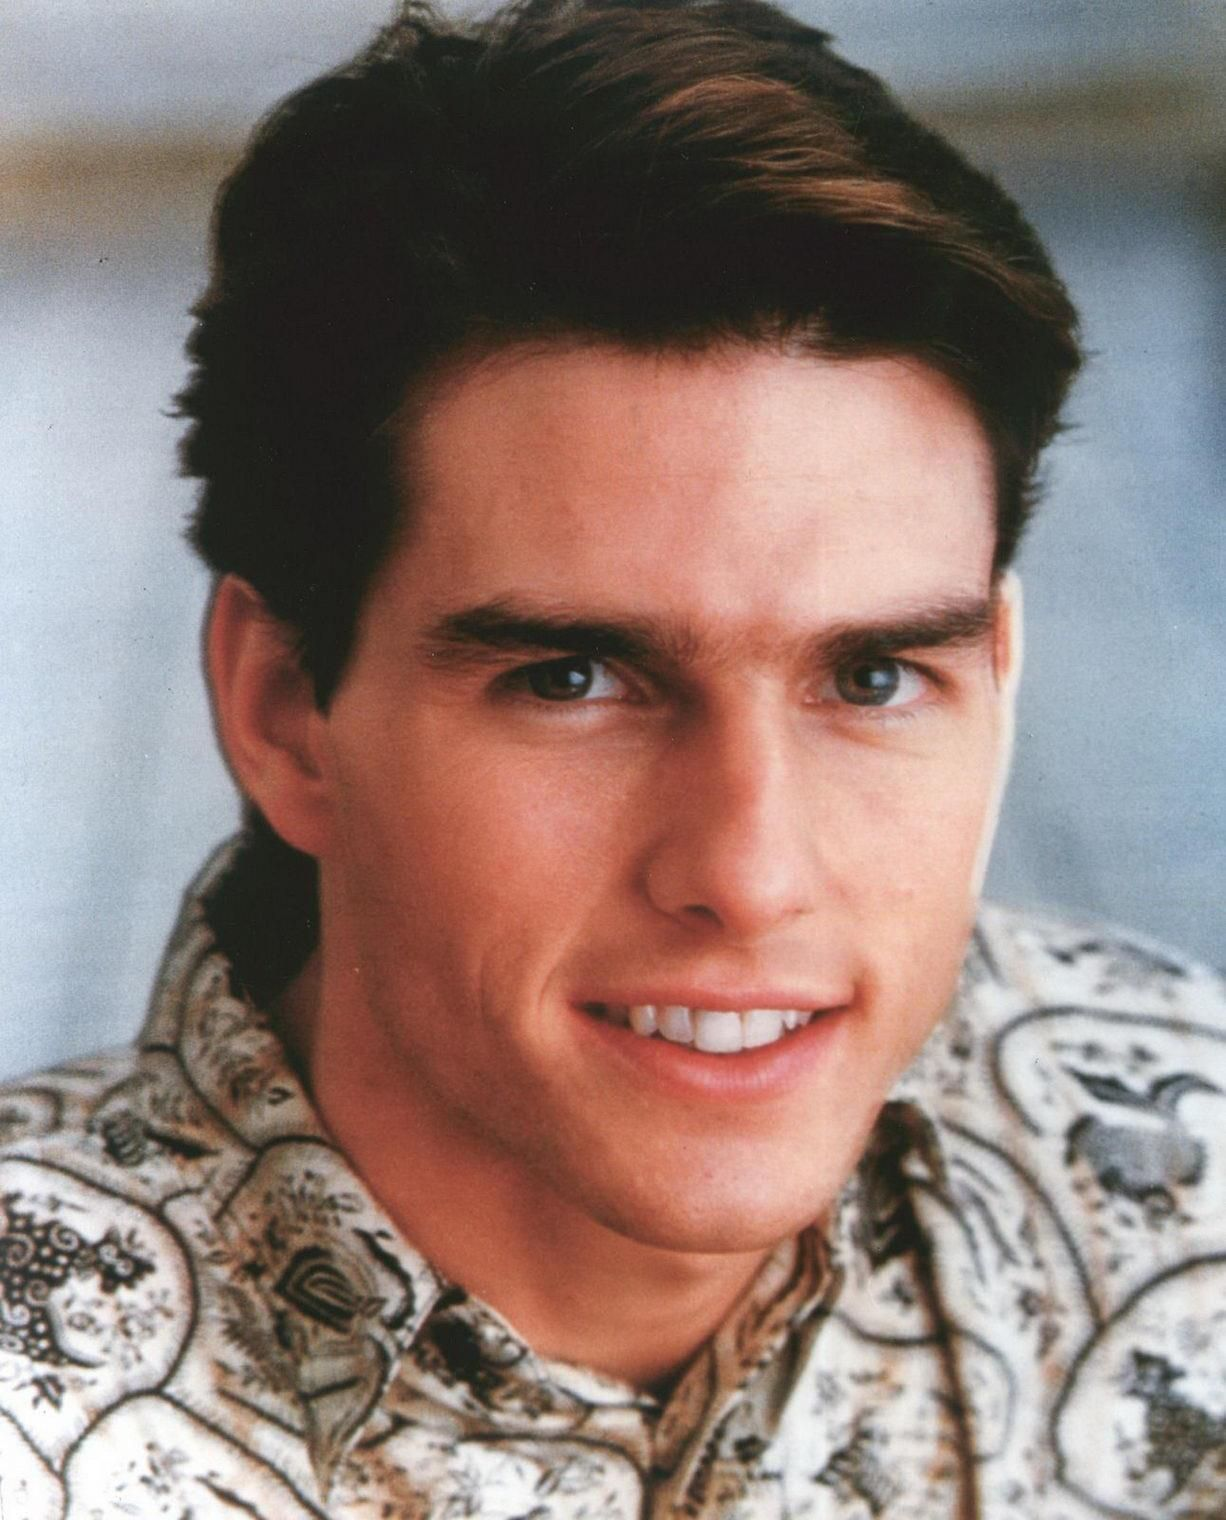 Can someone please explain Scientology to me and why it made Tom Cruise absolutely insane?